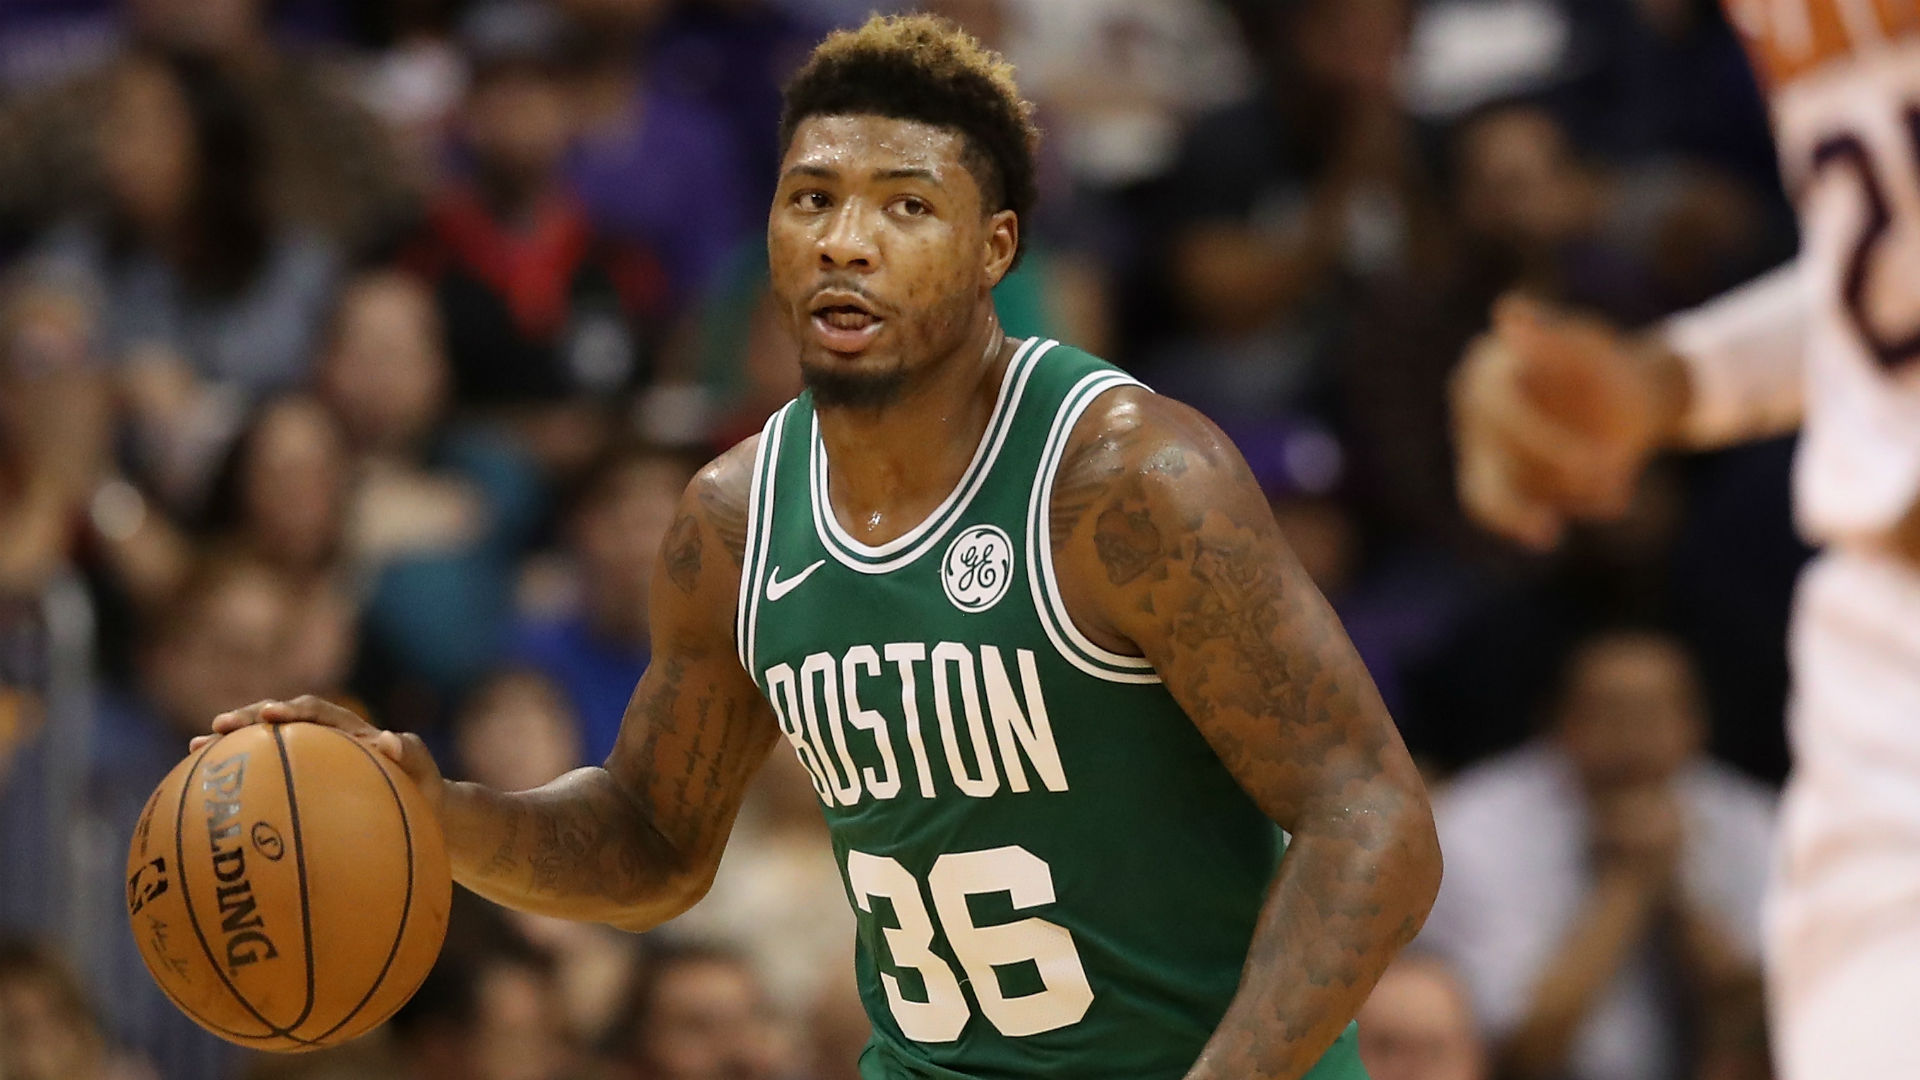 Celtics G Marcus Smart has to be held back from going after Hawks' DeAndre' Bembry